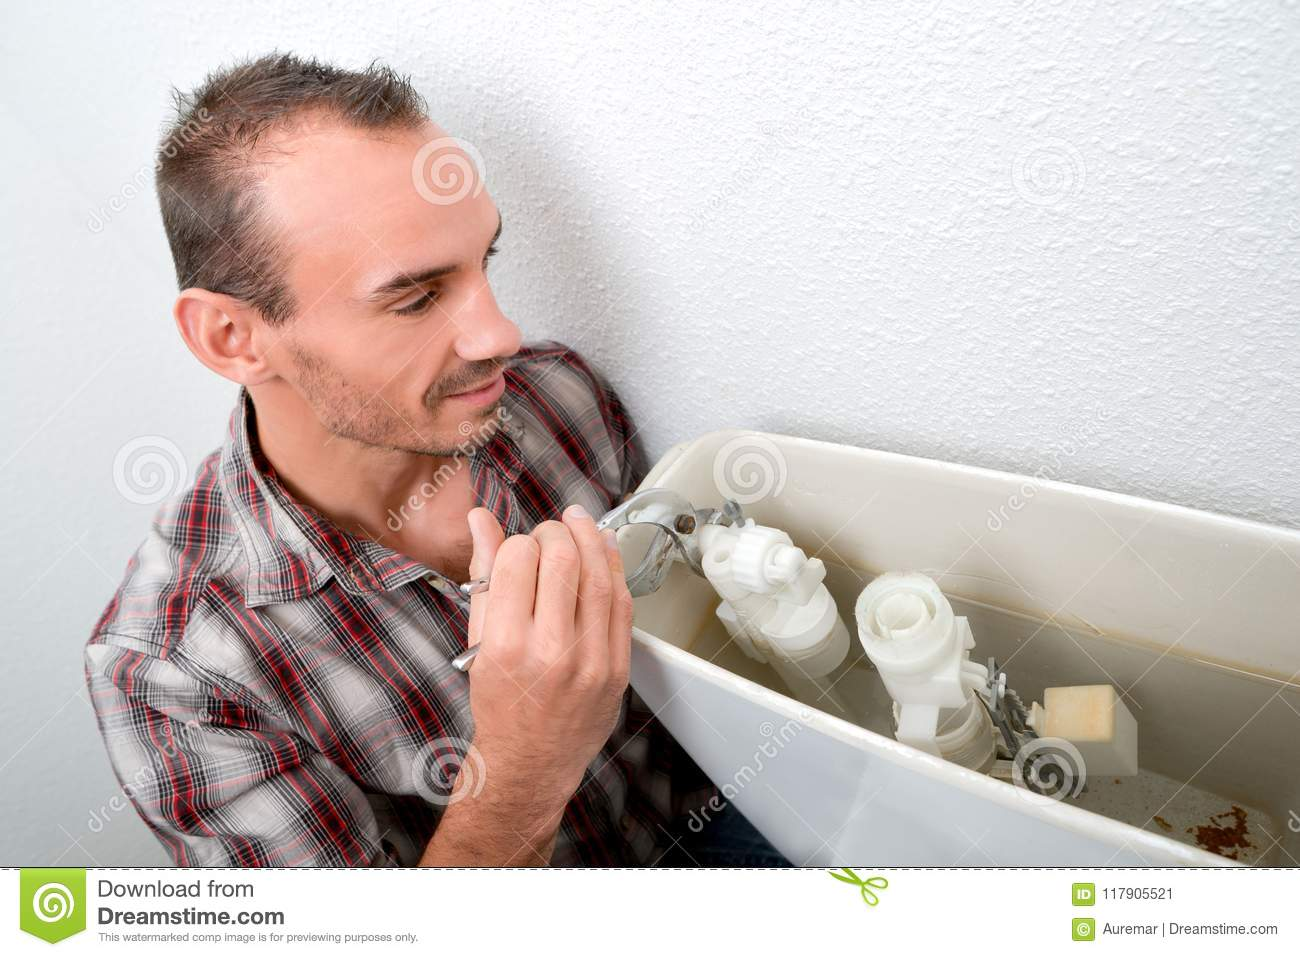 Plumber fixing a toilet stock image. Image of professional - 117905521